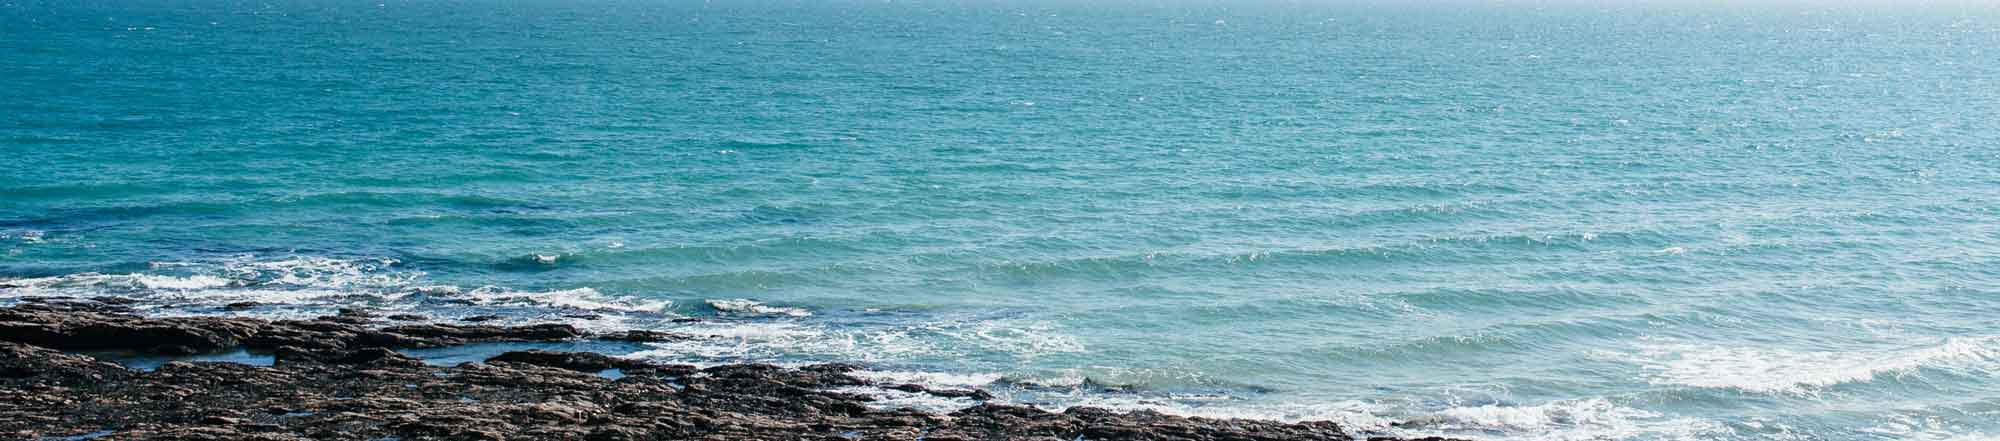 How Coronabirus is affecting Bookshell Bindery, image of the beautiful blue sea at Gylly beach in Falmouth, Cornwall